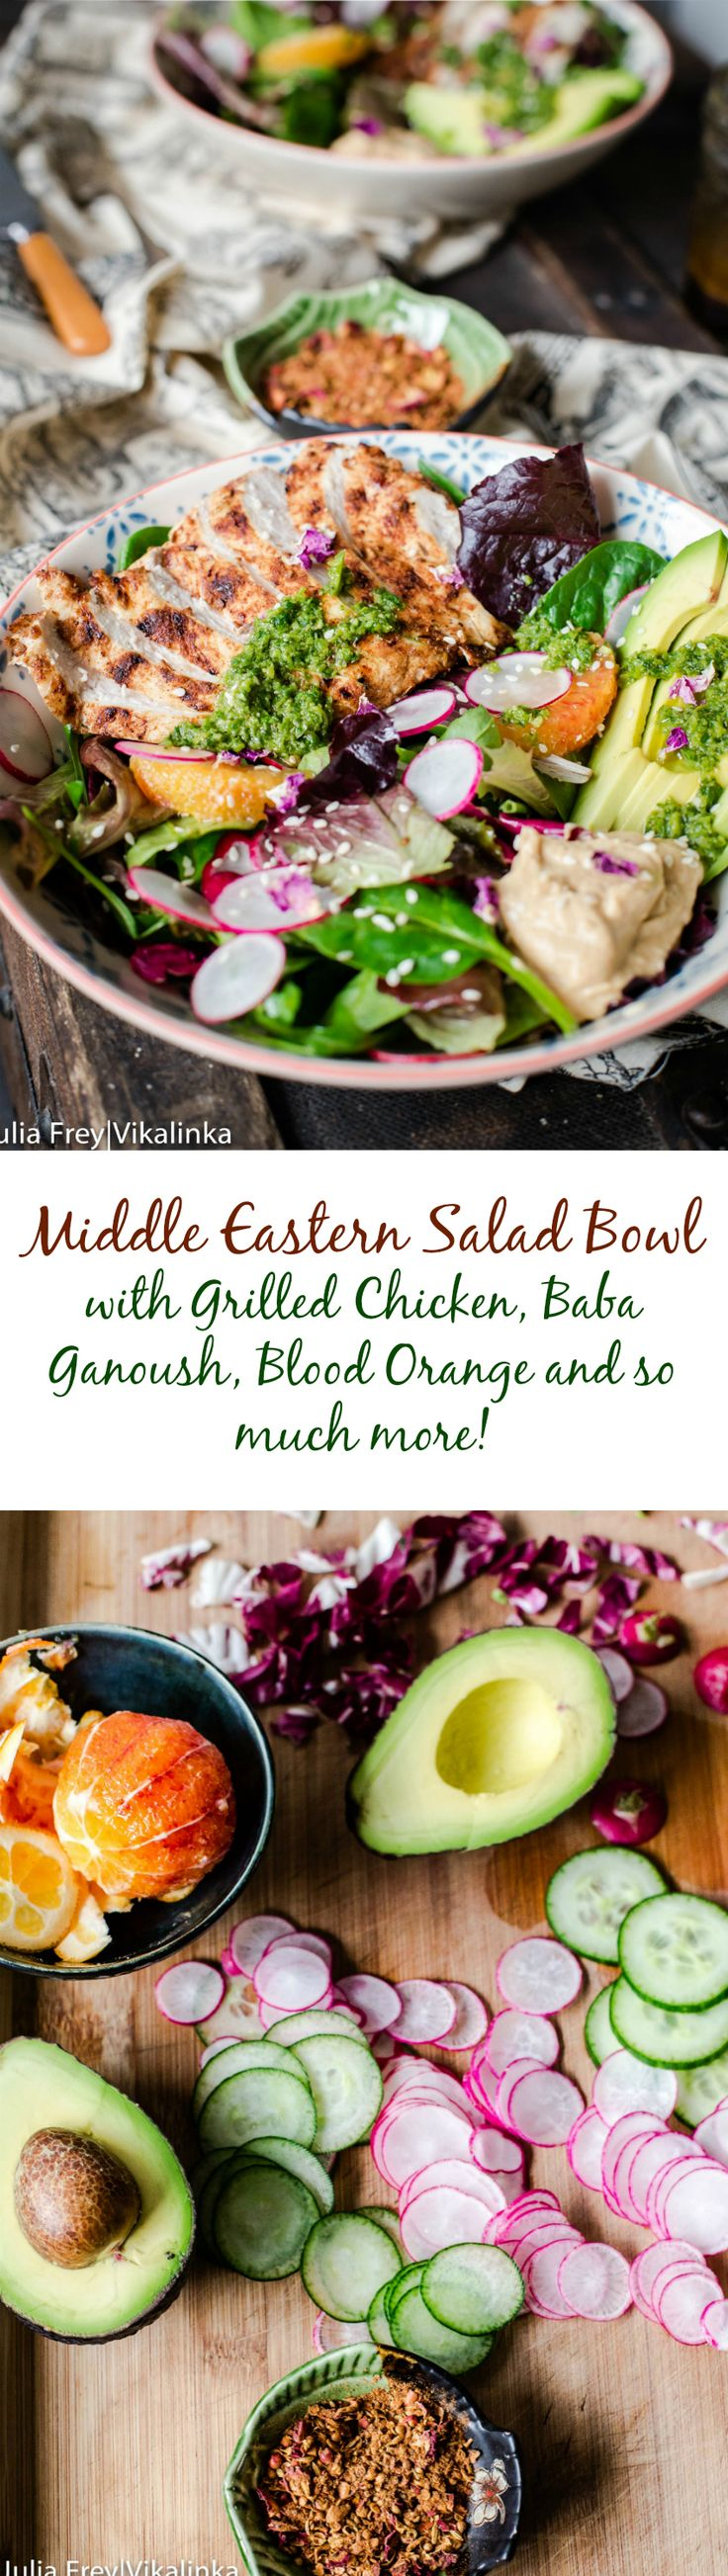 This Middle Eastern inspired salad with aromatic grilled chicken breast, avocado, baba ganoush and zesty zhoug dressed with pomegranate vinaigrette will make for a healthy and delicious meal!